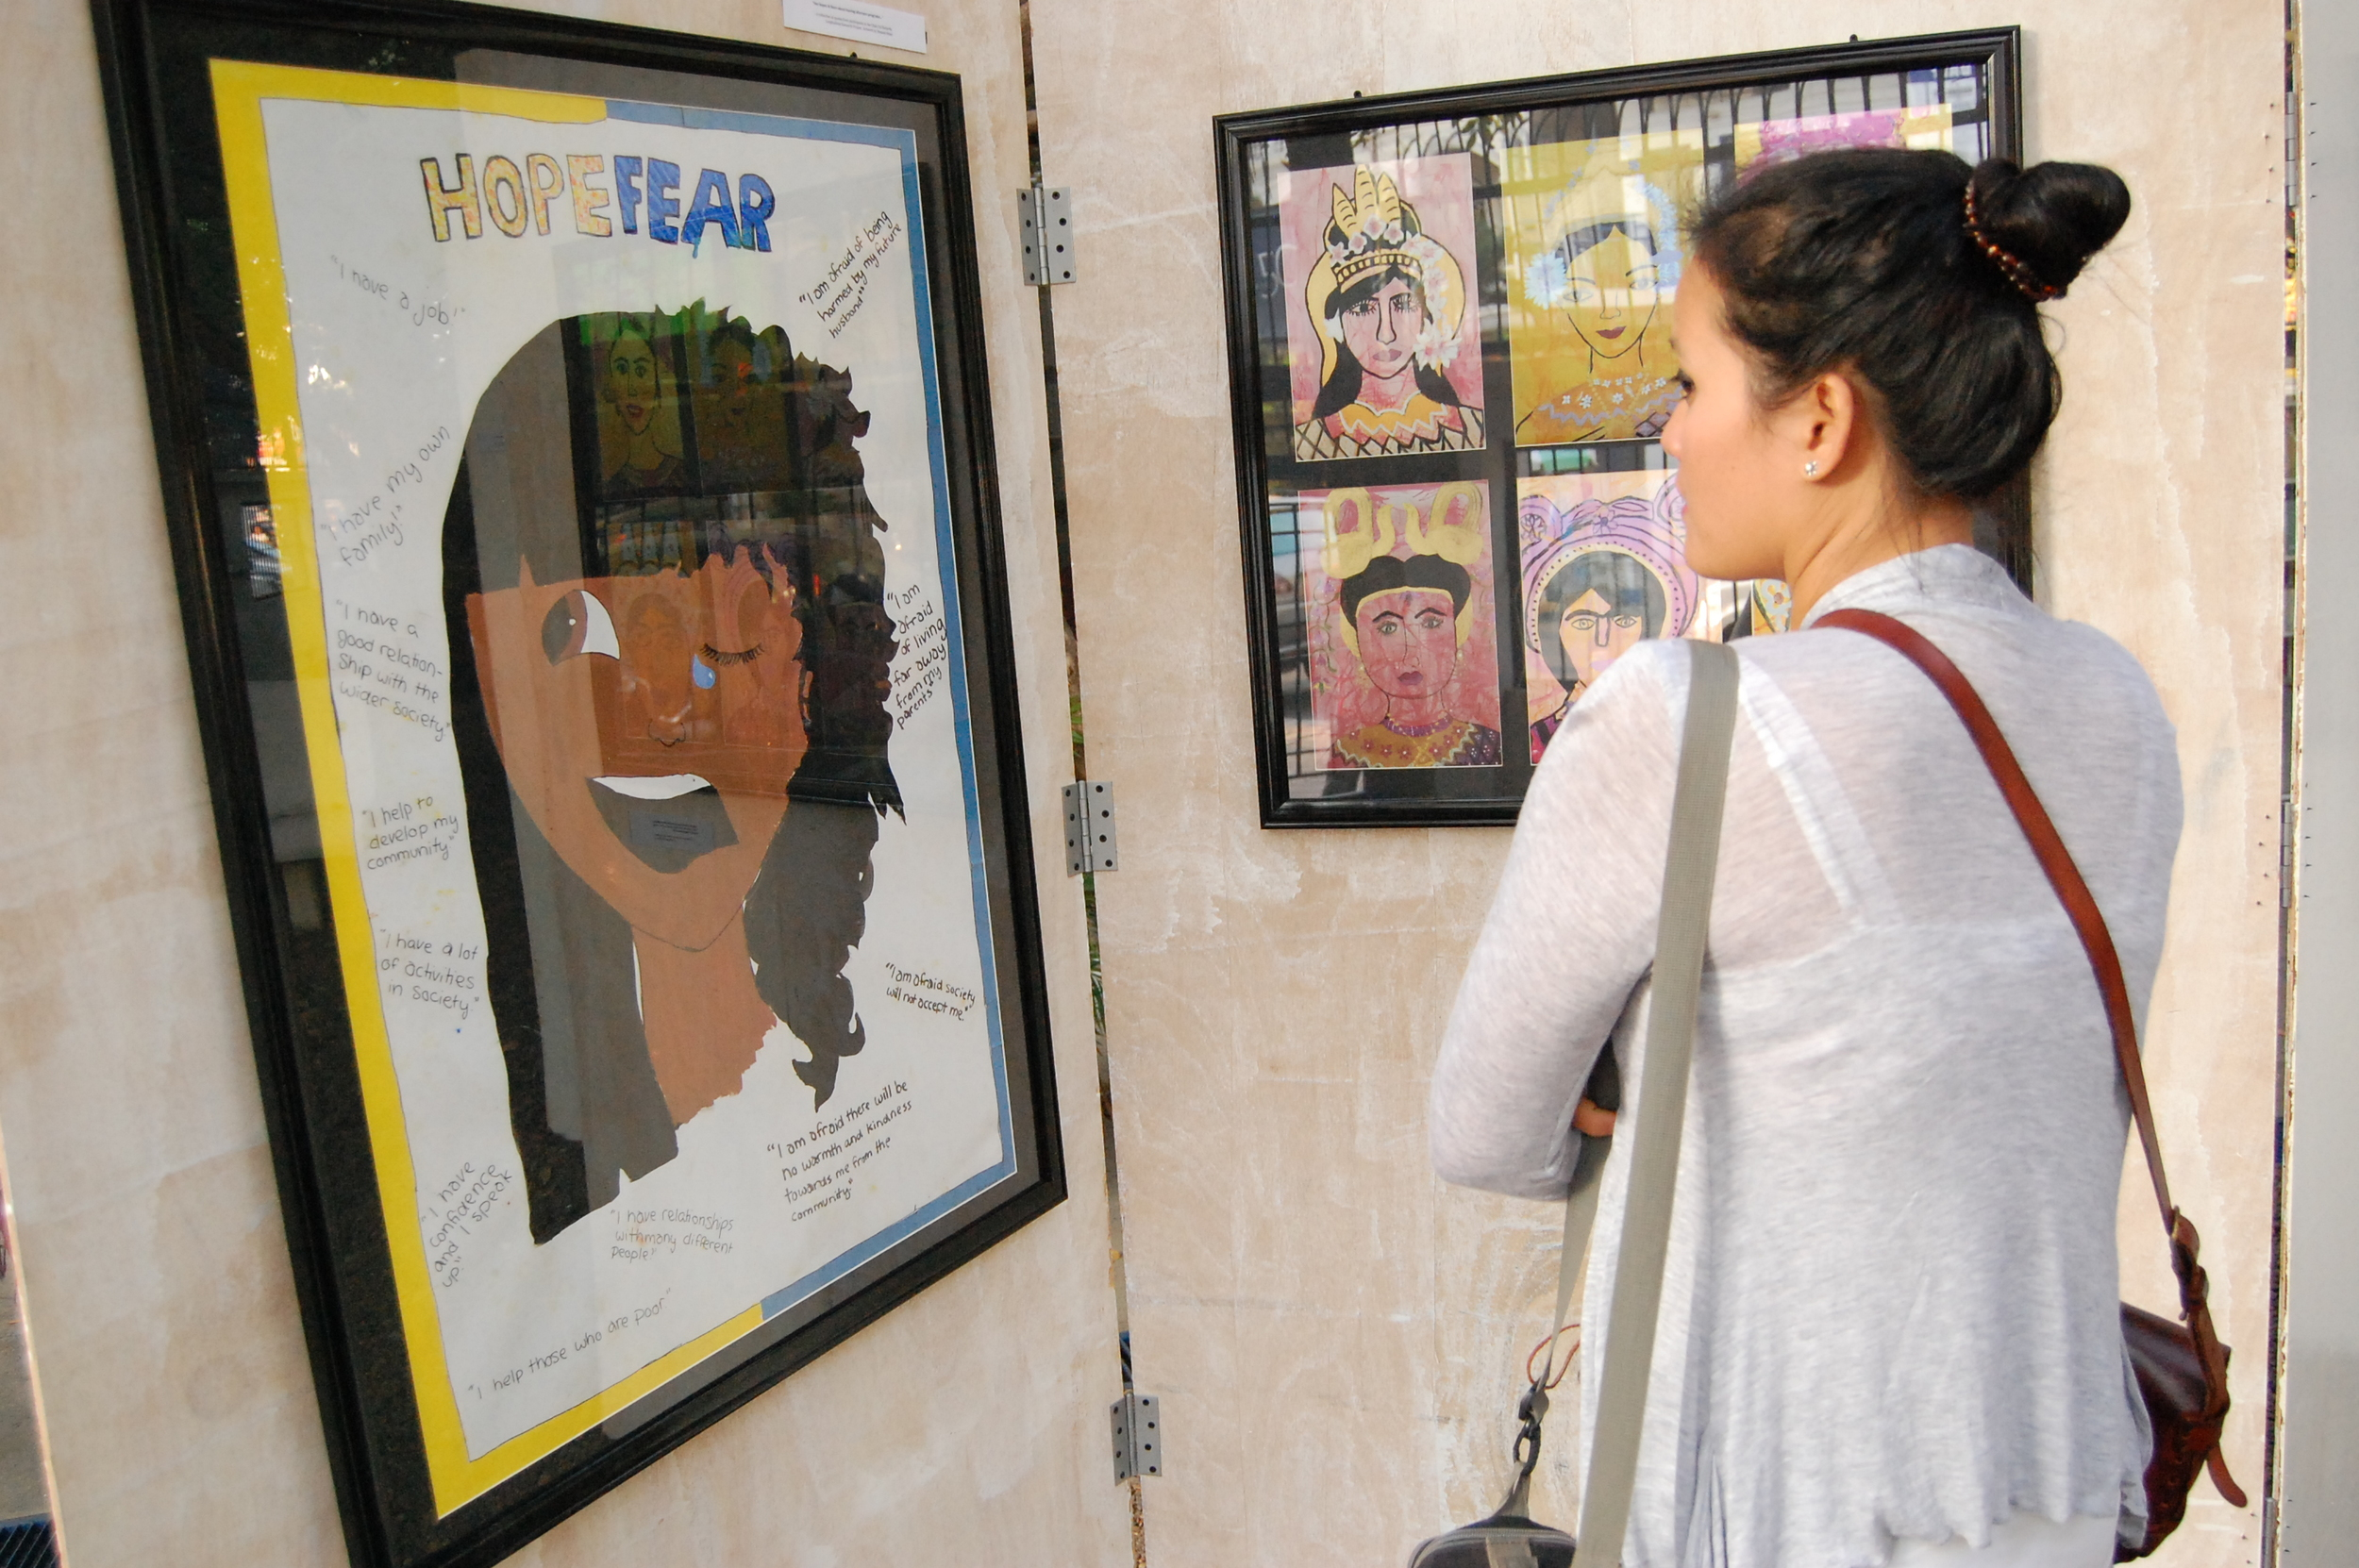 """In April 2011 Chab Dai & The Asia Foundation co-hosted the International Women's Day Event called """"A New Life, A New Hope"""". Member's artwork about """"freedom"""" was displayed."""